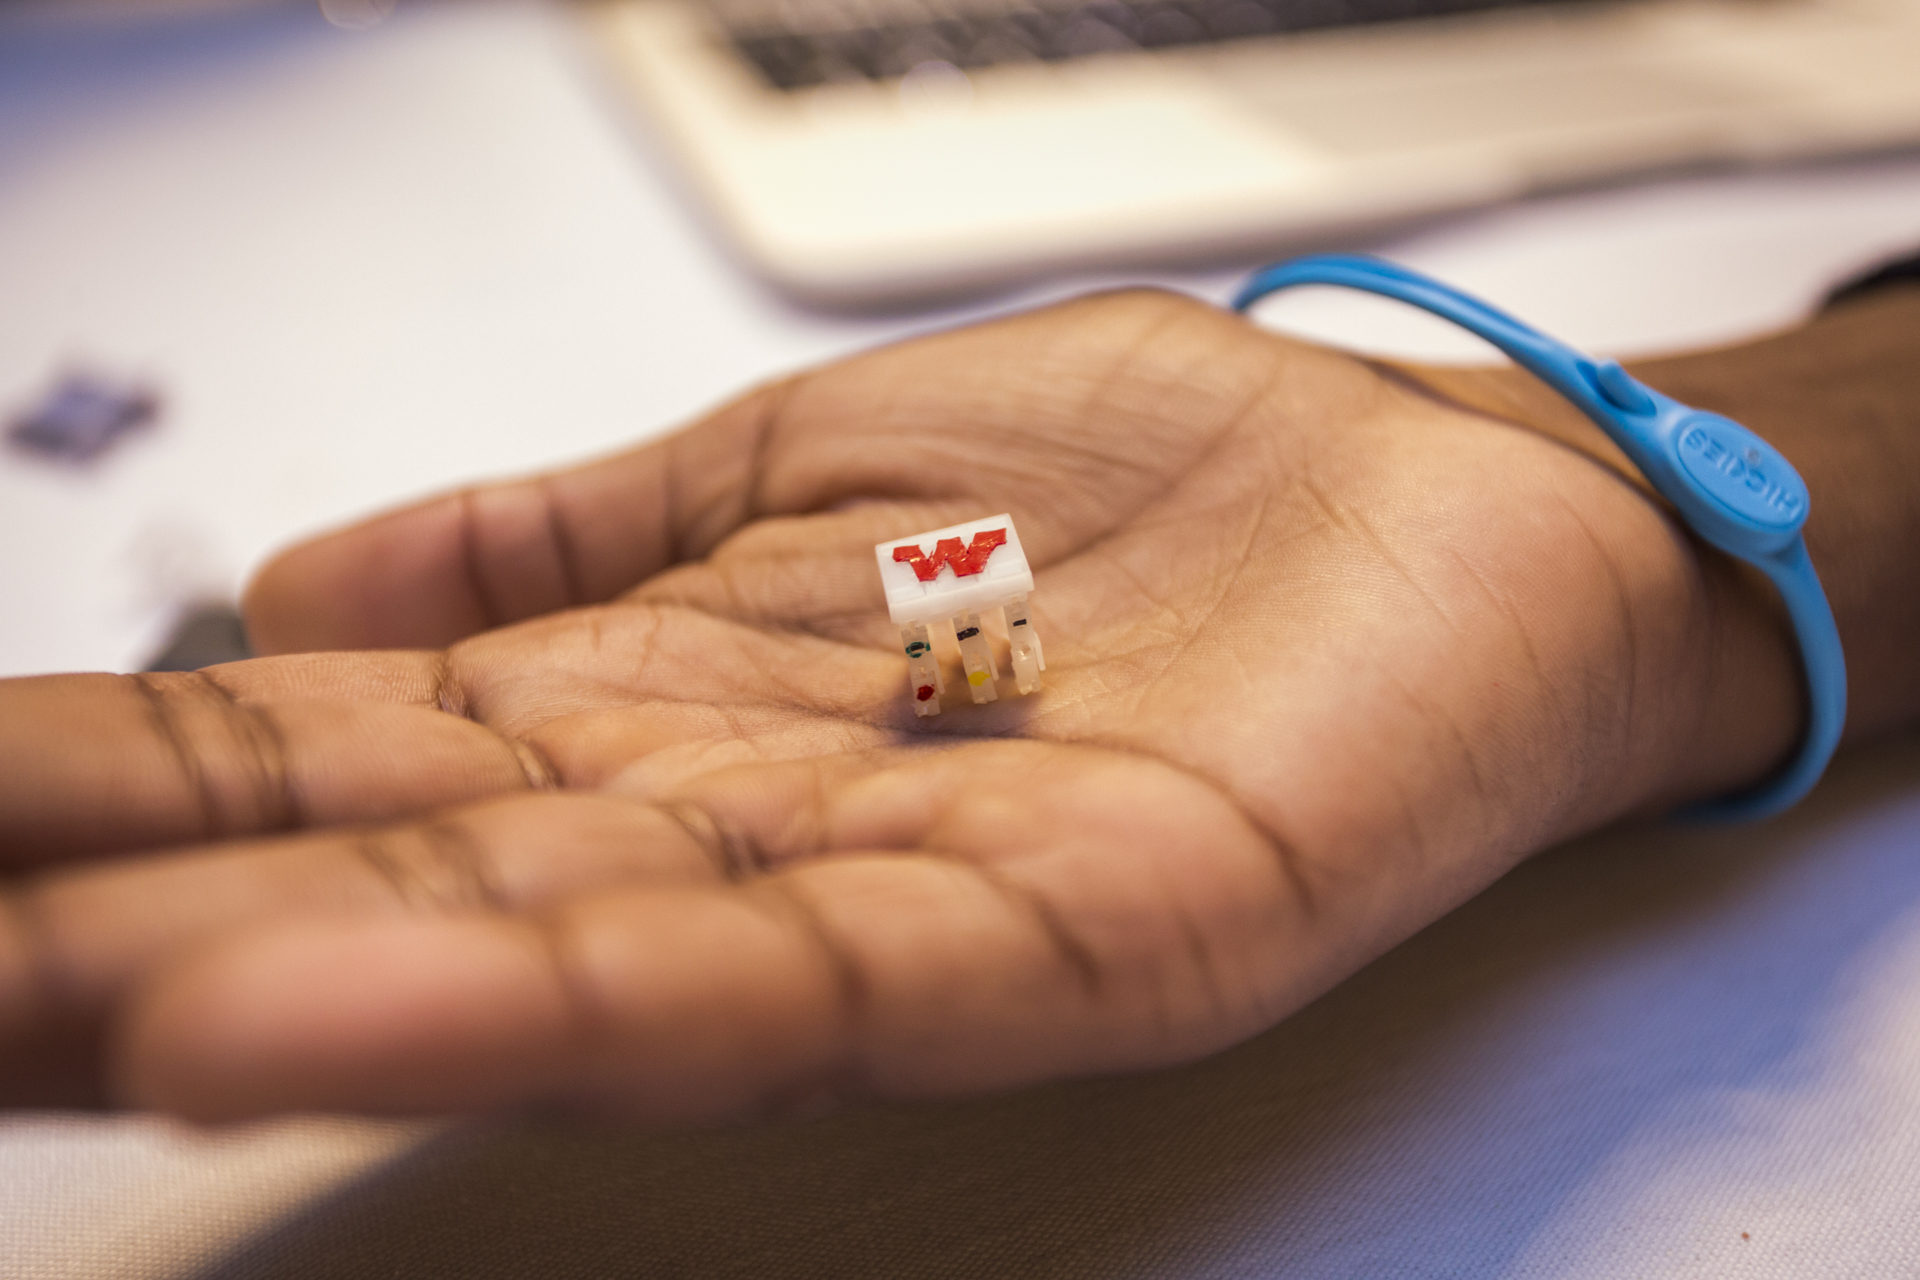 An attendee holds one of Sarah Bergbreiter's tiny, tiny robots in the palm of her hand. Photo: Ryan Lash/TED